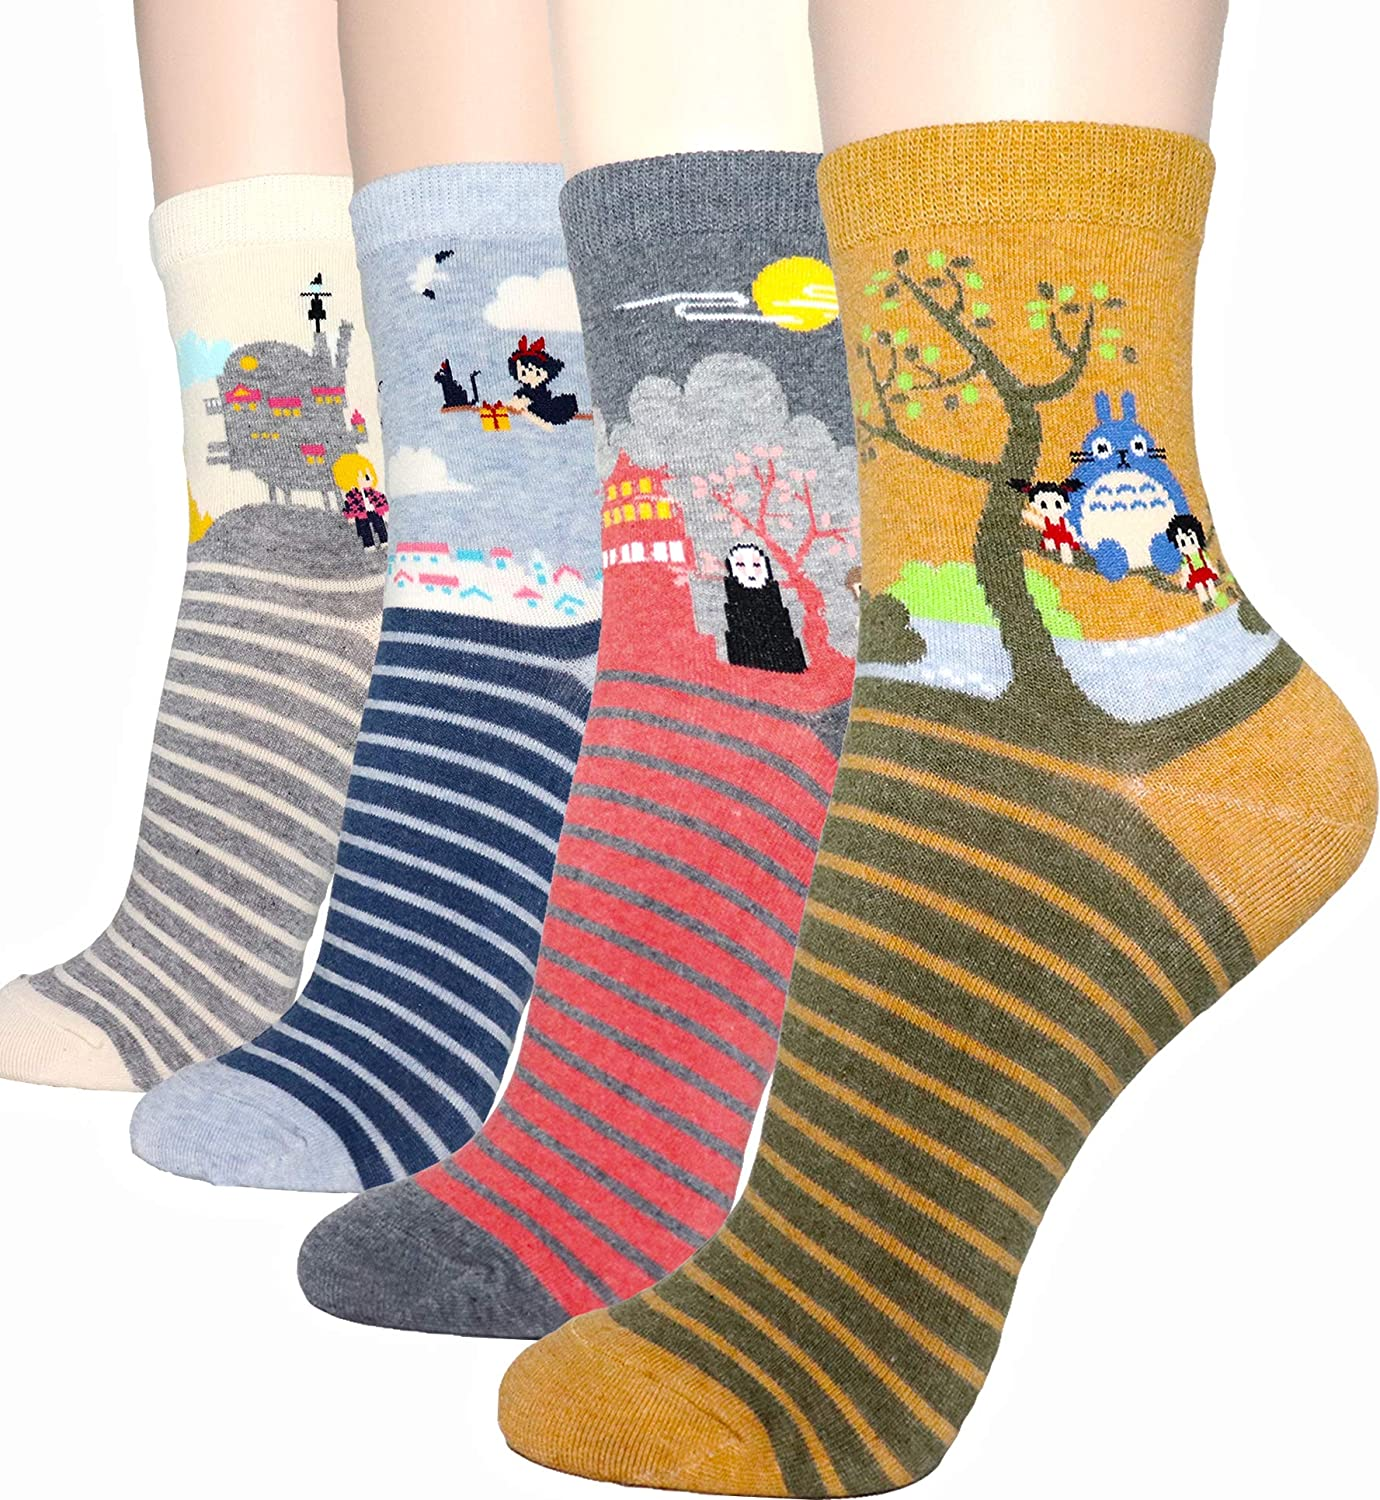 Cute Owl ArtCrazy Socks Casual Cotton Crew Socks Cute Funny Sock Great For Sports And Hiking